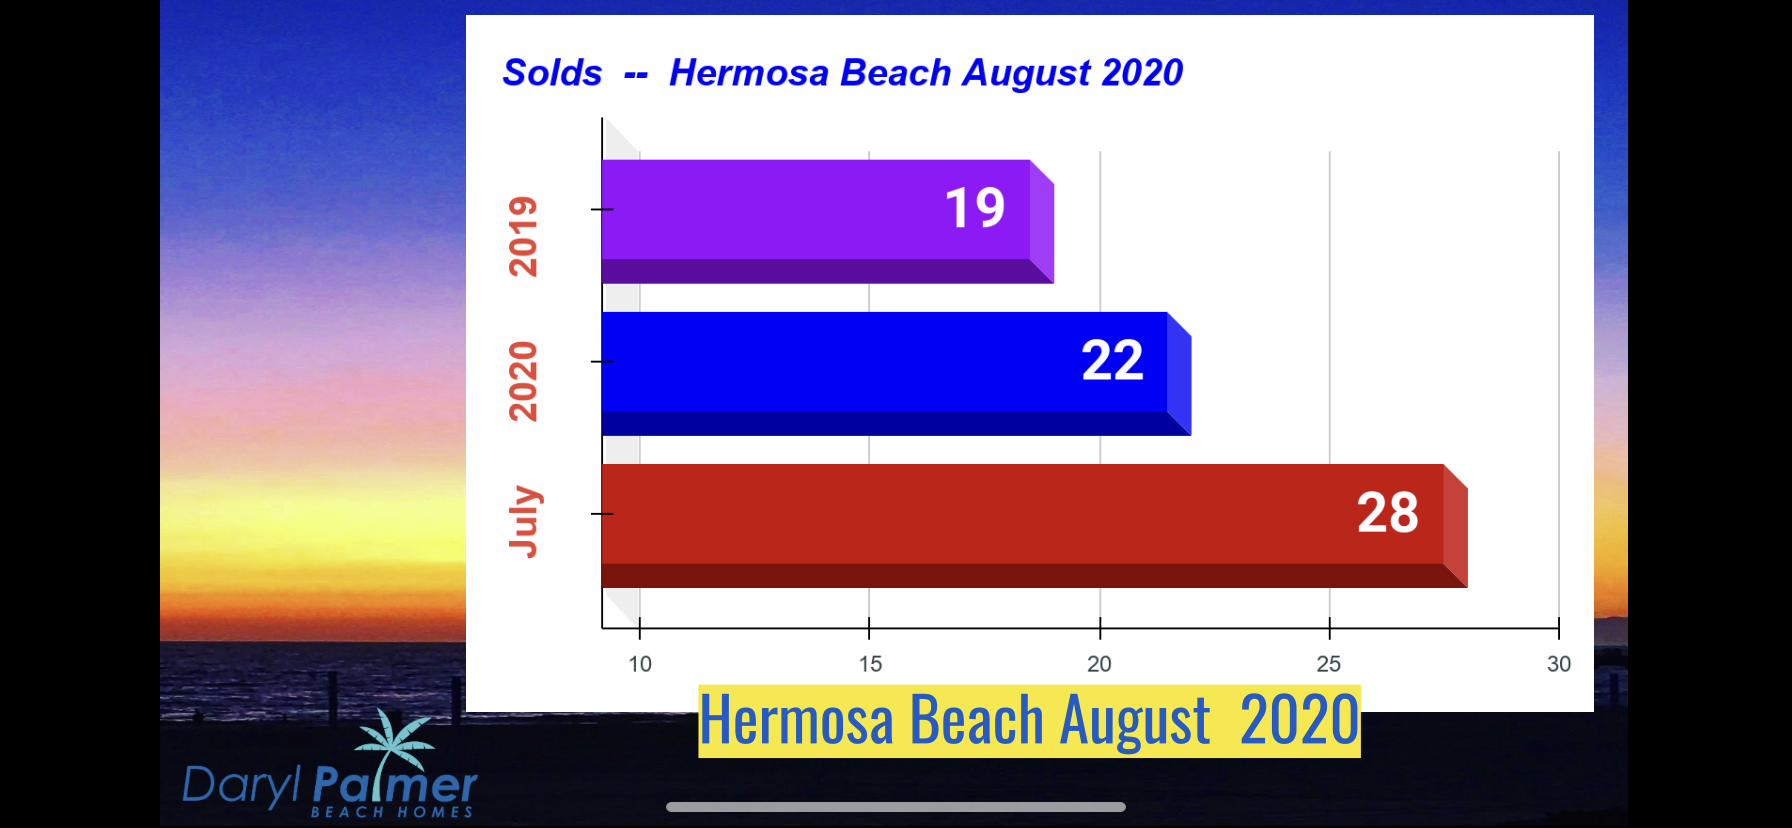 South Bay Real Estate Update August 2020 Daryl Palmer Beach Homes